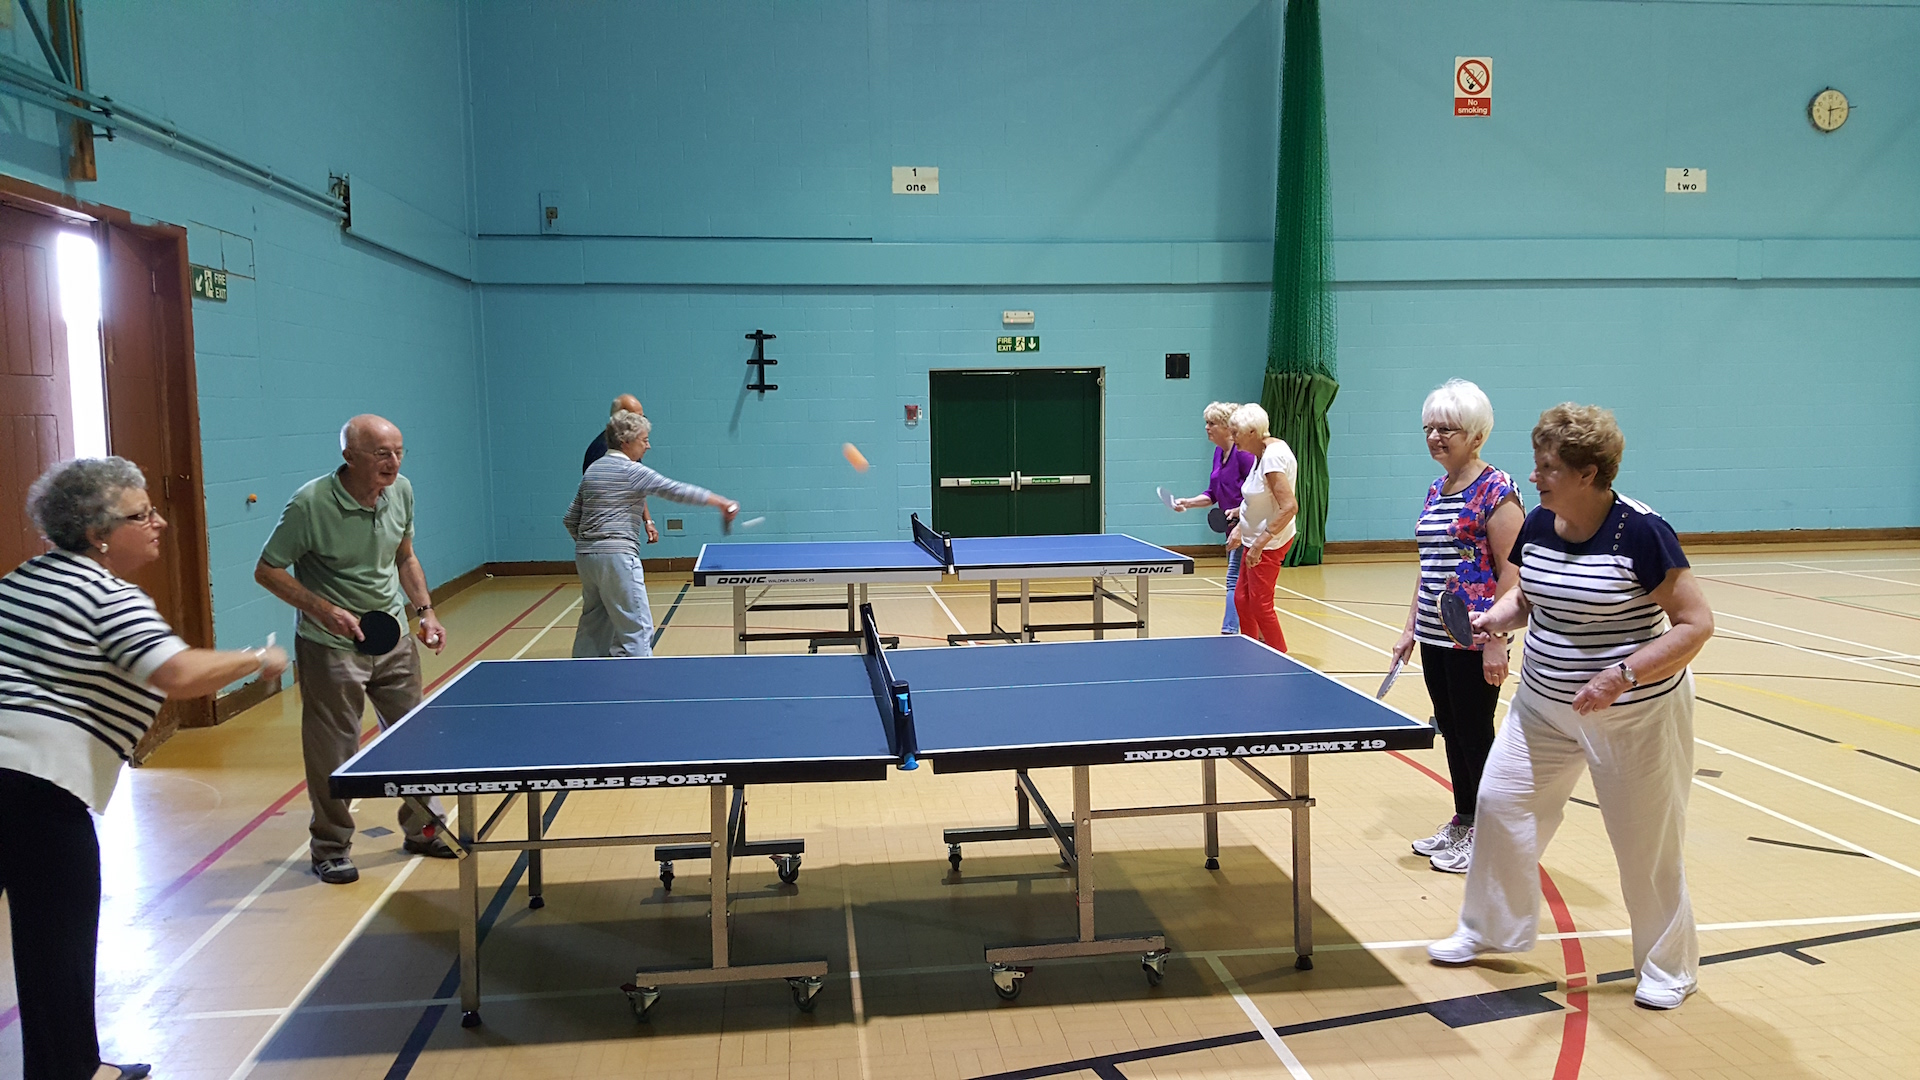 Our Table Tennis Group Sept 2016